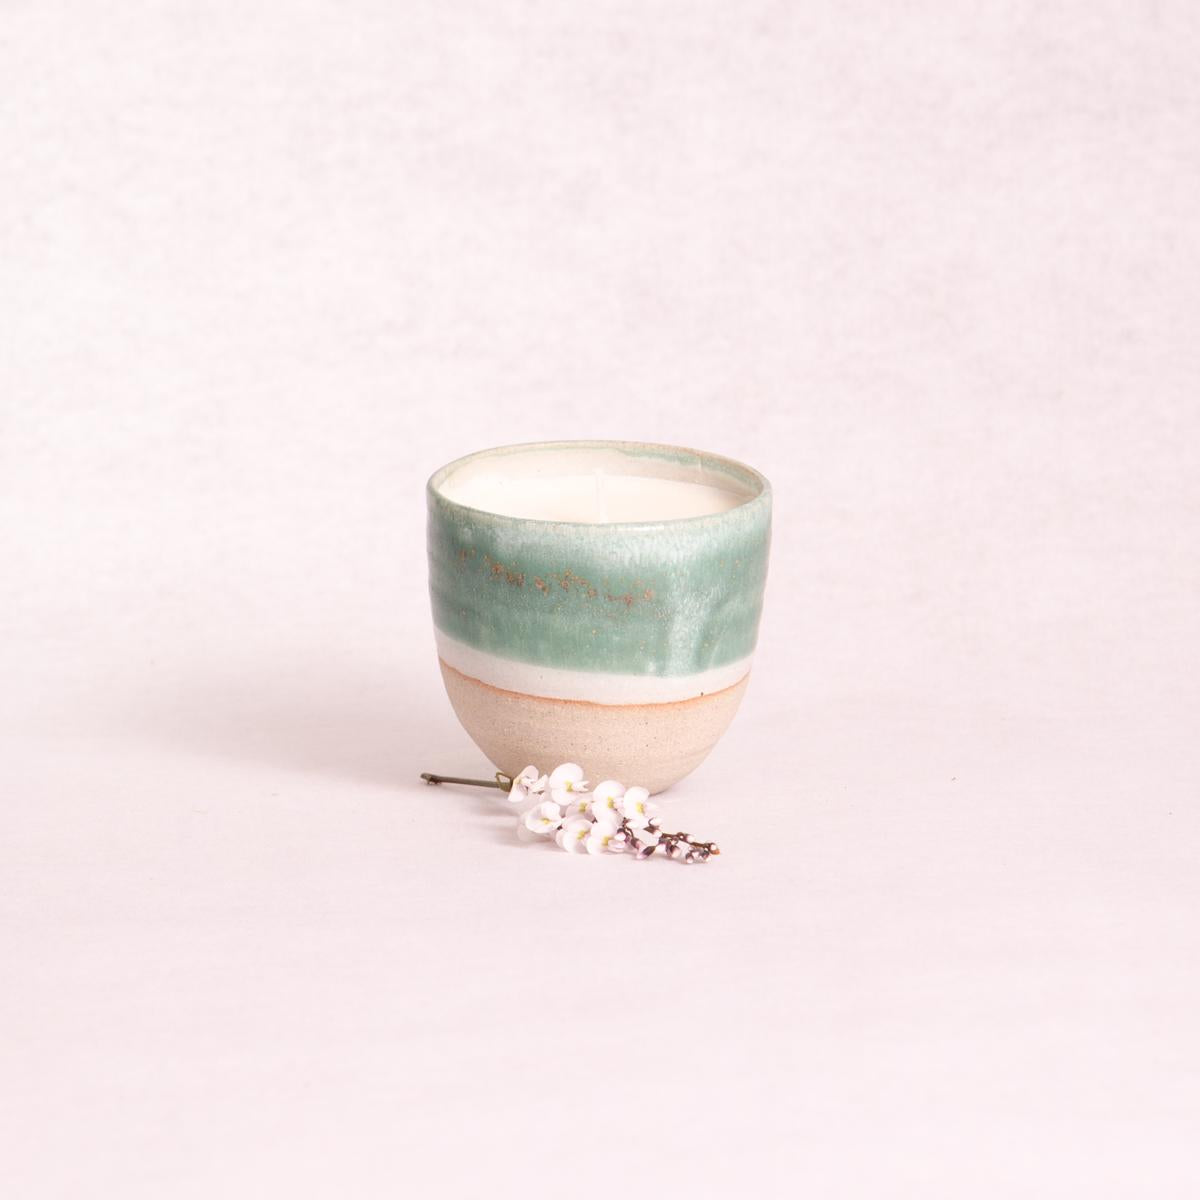 Ceramic Soy Candle - Turquoise Dip - Candle - Throw Some Seeds - Australian gardening gifts and eco products online!